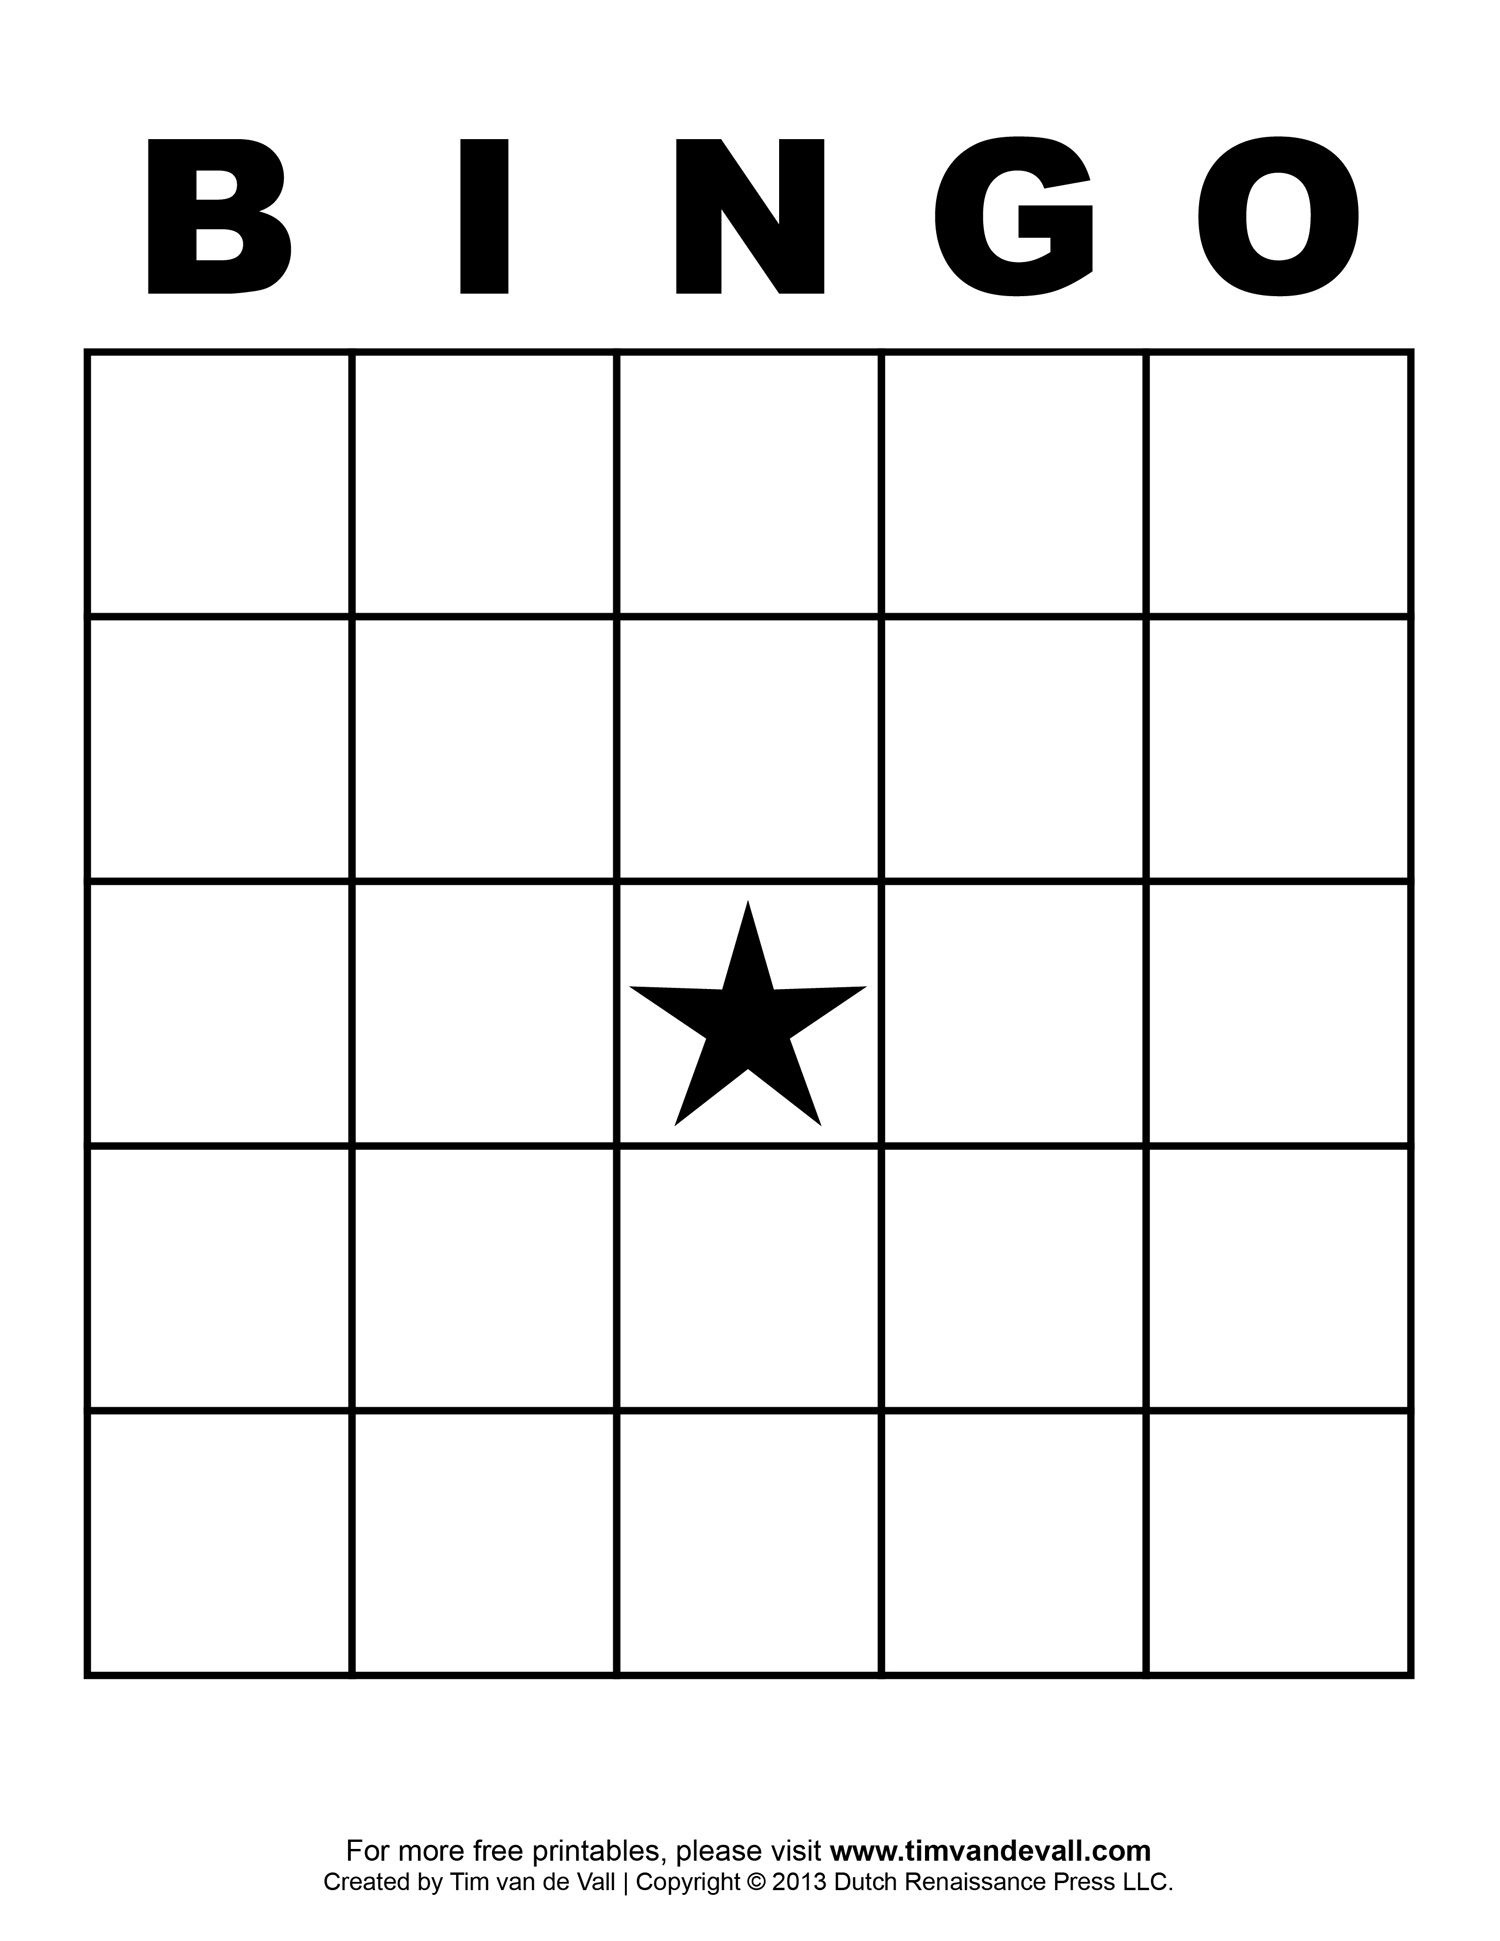 Free Printable Blank Bingo Cards Template 4 X 4 | Classroom | Blank - Free Printable Bingo Cards And Call Sheet